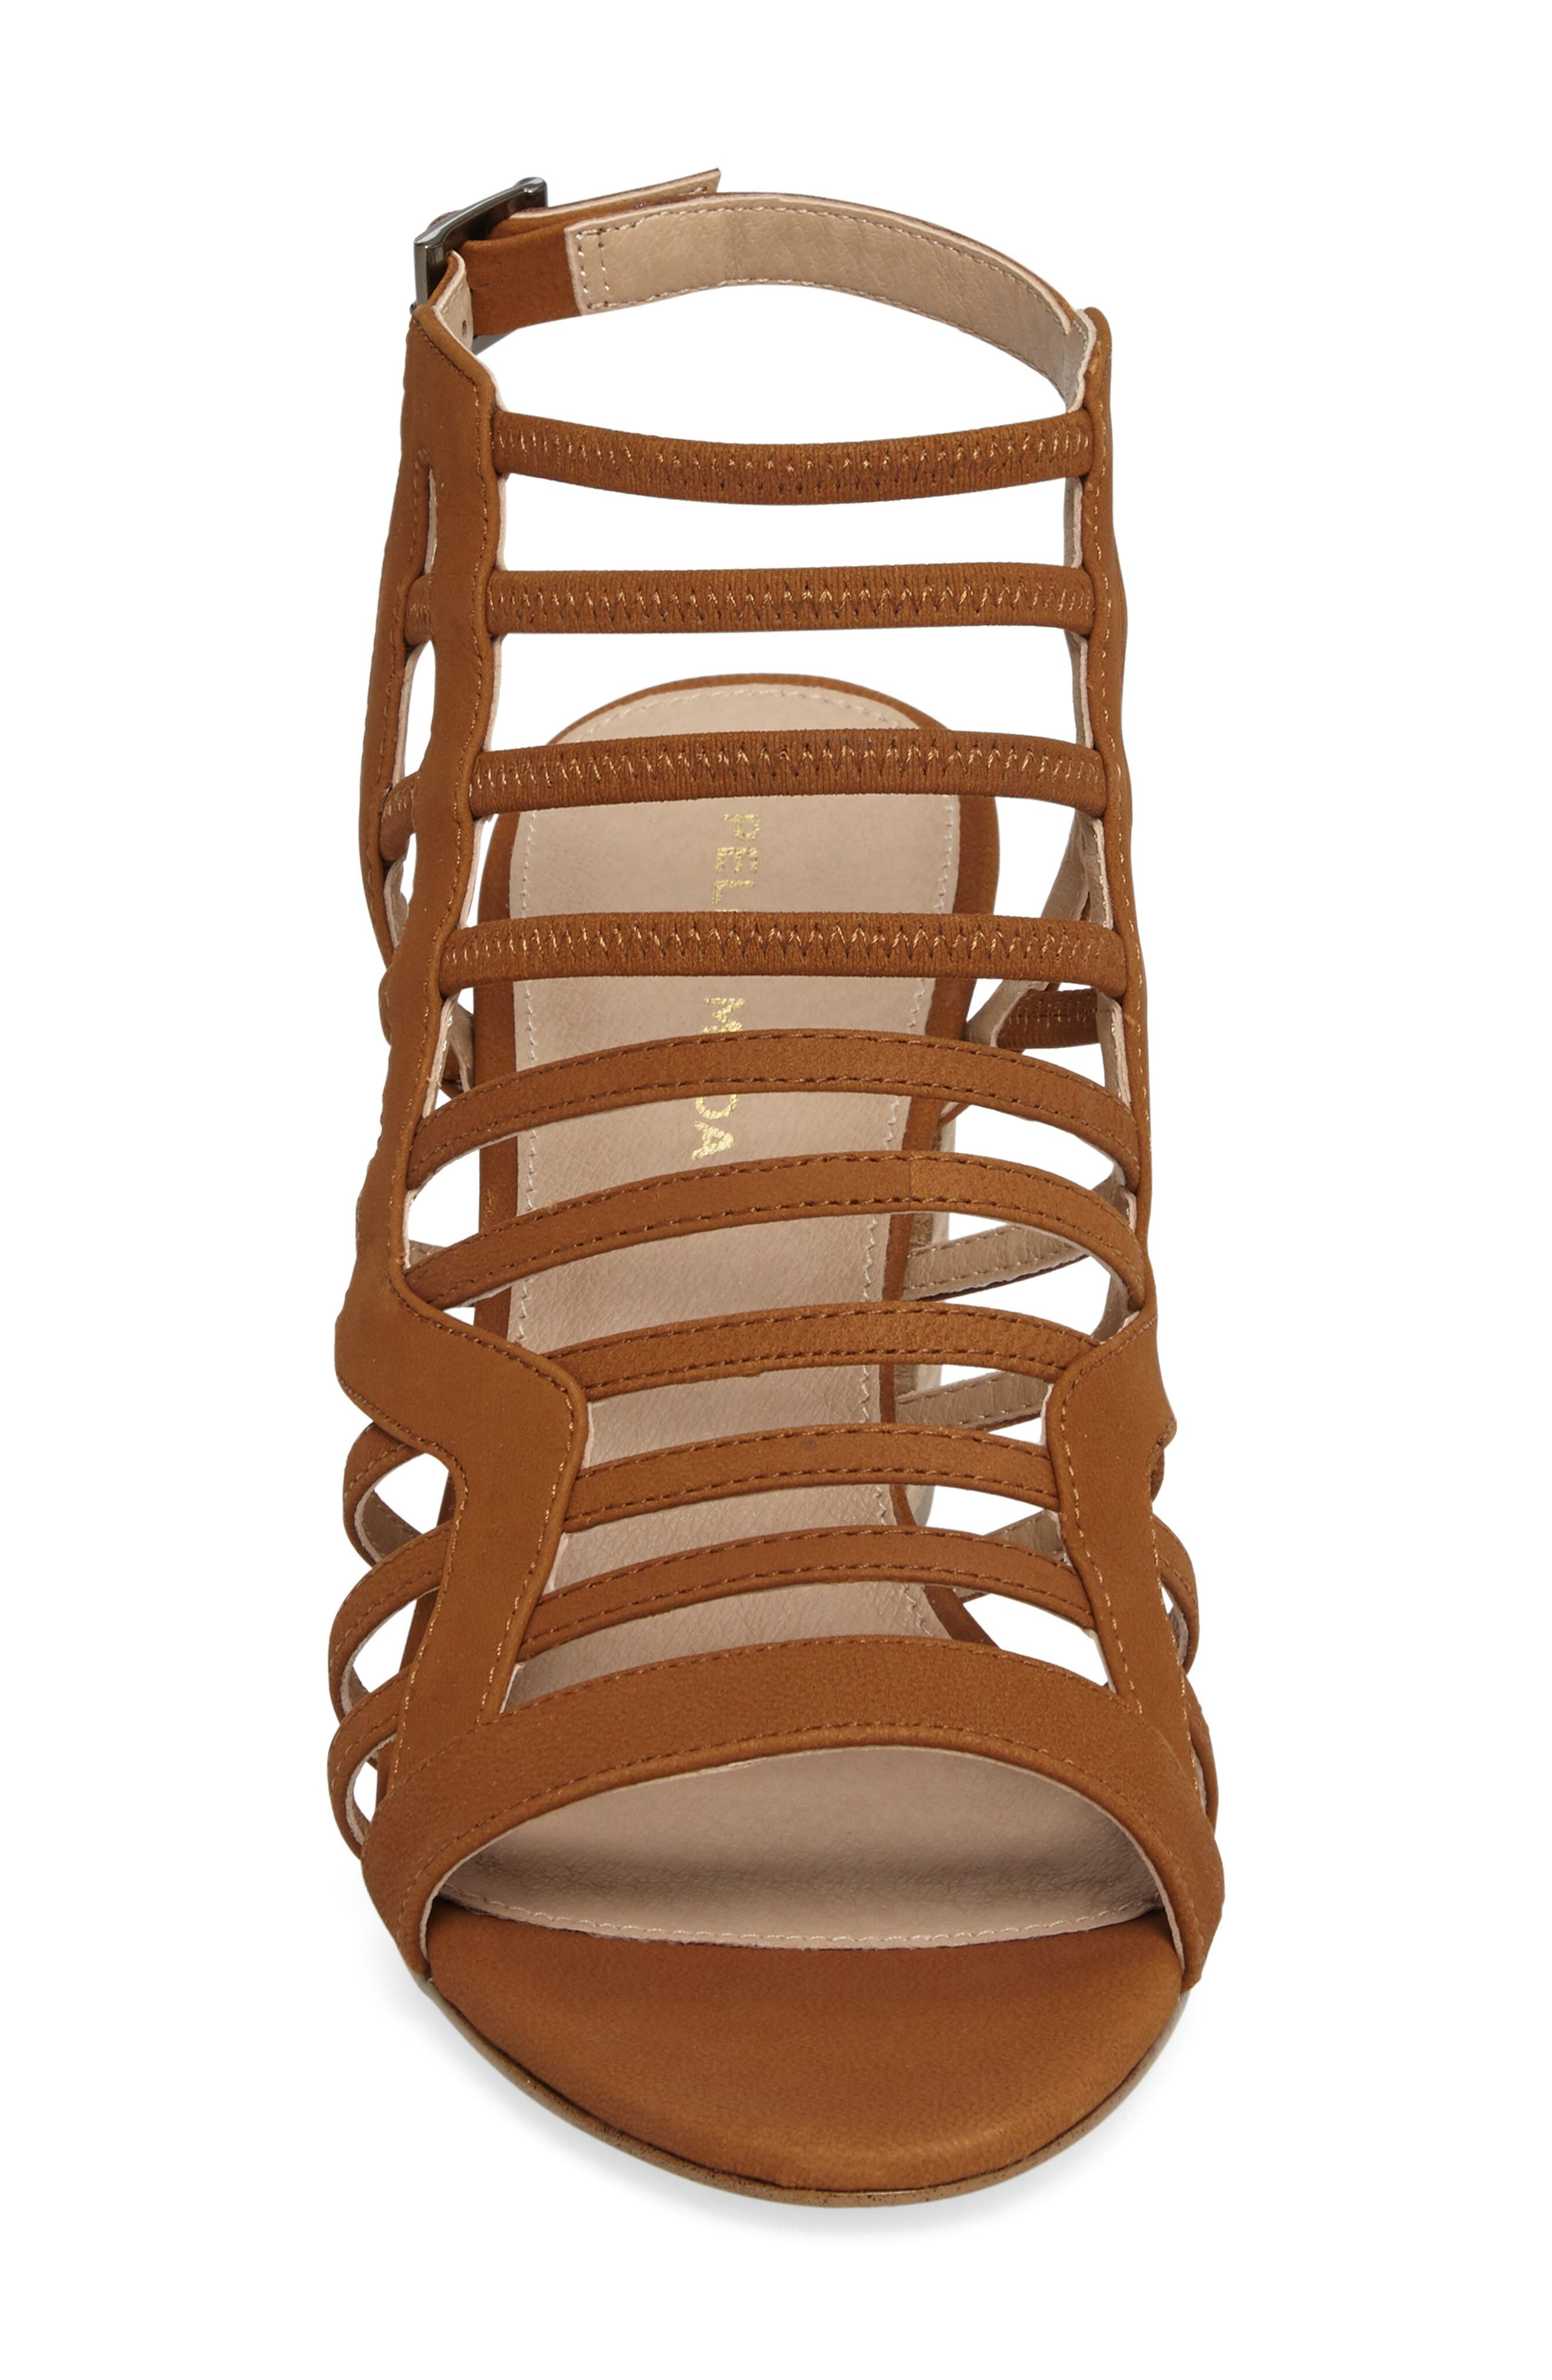 Bonitta Cage Sandal,                             Alternate thumbnail 4, color,                             Luggage Leather